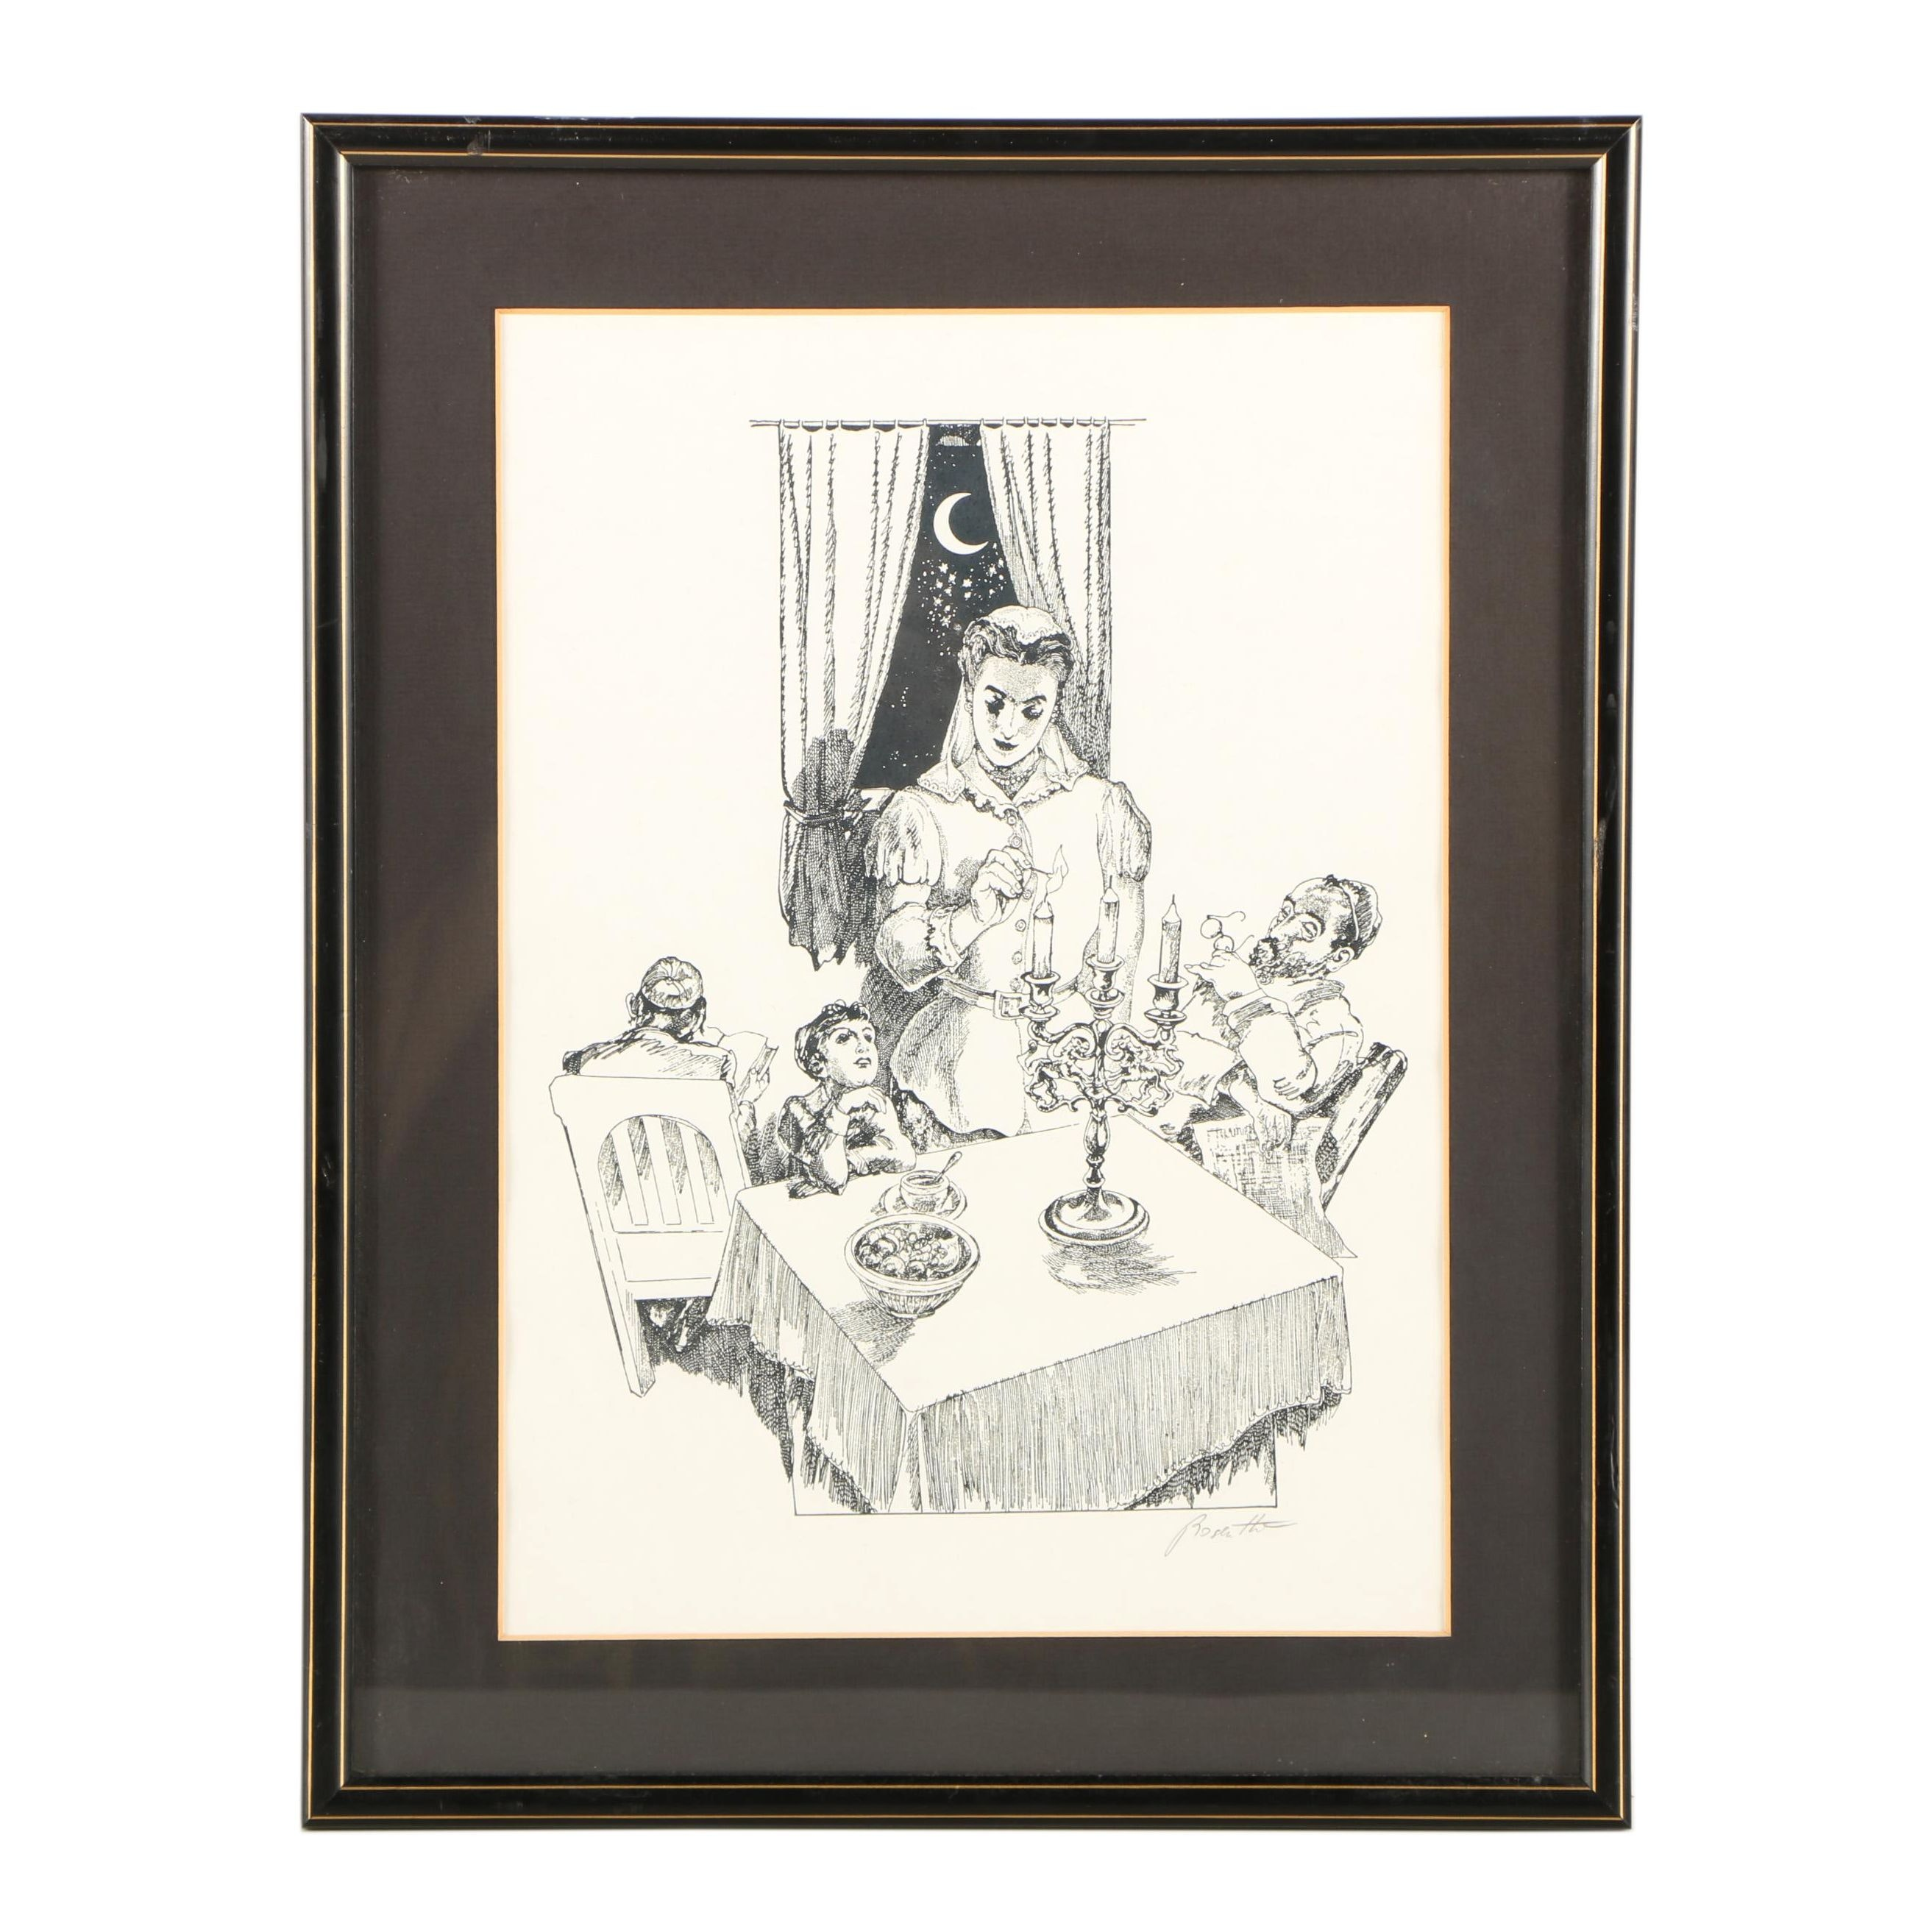 Rosenthal Lithograph of a Family